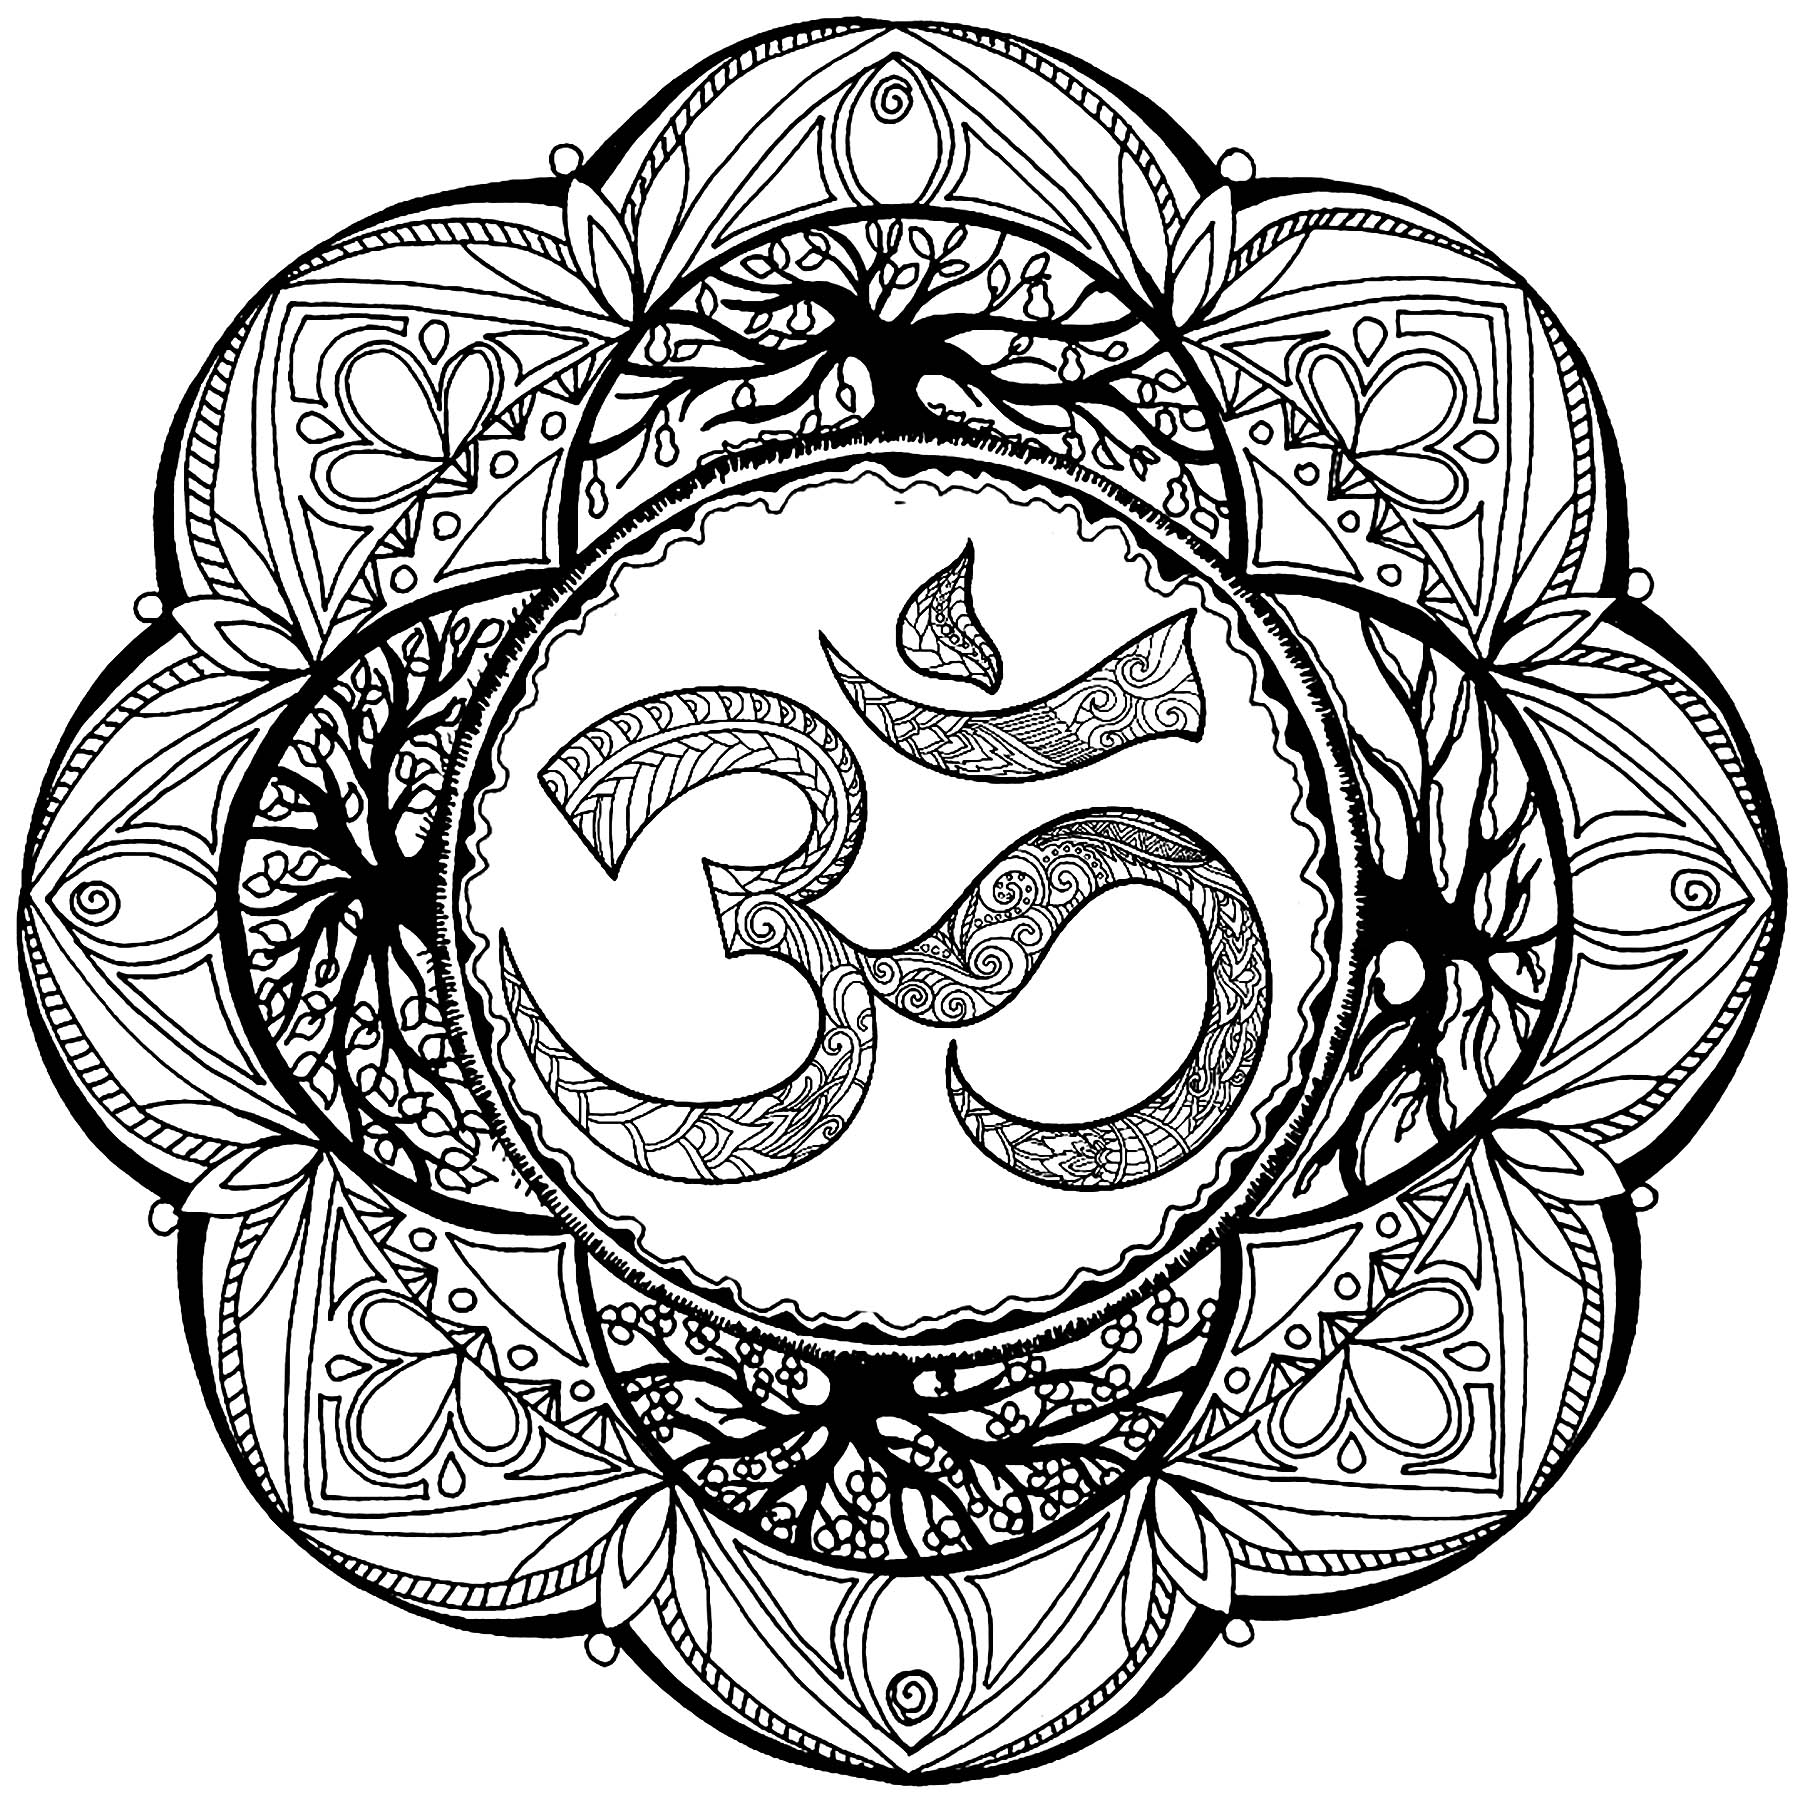 Om, also written as 'Aum', is the most sacred syllable, symbol, or mantra in Hinduism. This symbol signifies the essence of the ultimate reality, consciousness or Atman.